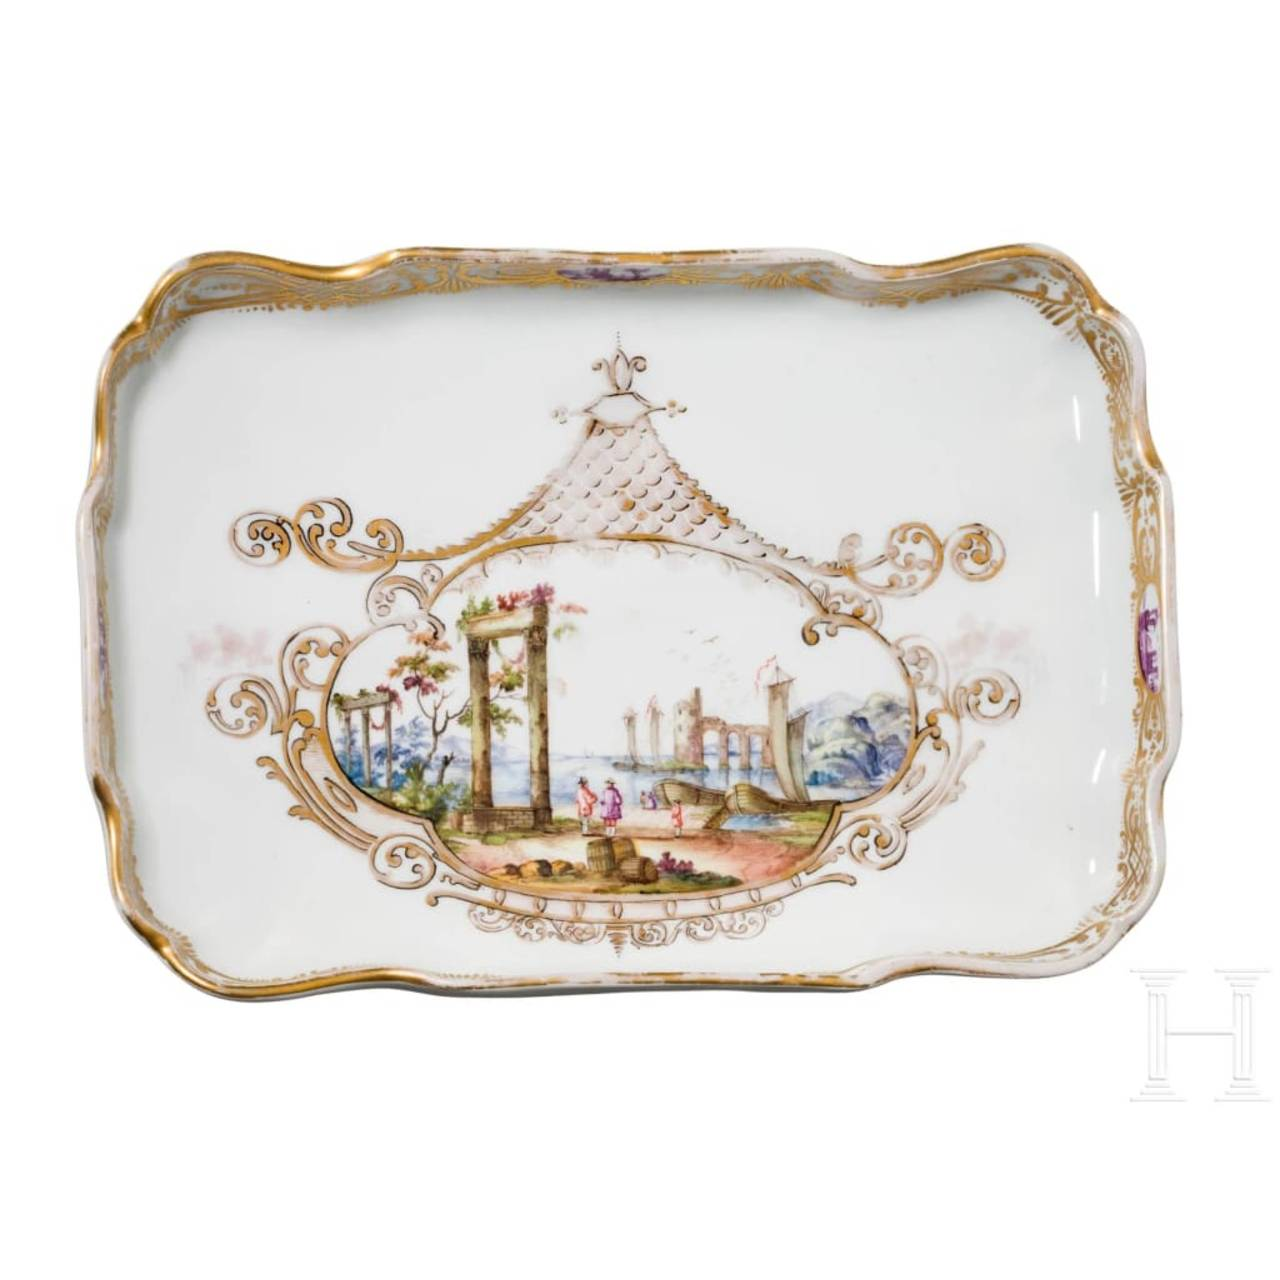 A delicately painted tray with motif and decor from the 18th century, Meissen, 18th/19th century